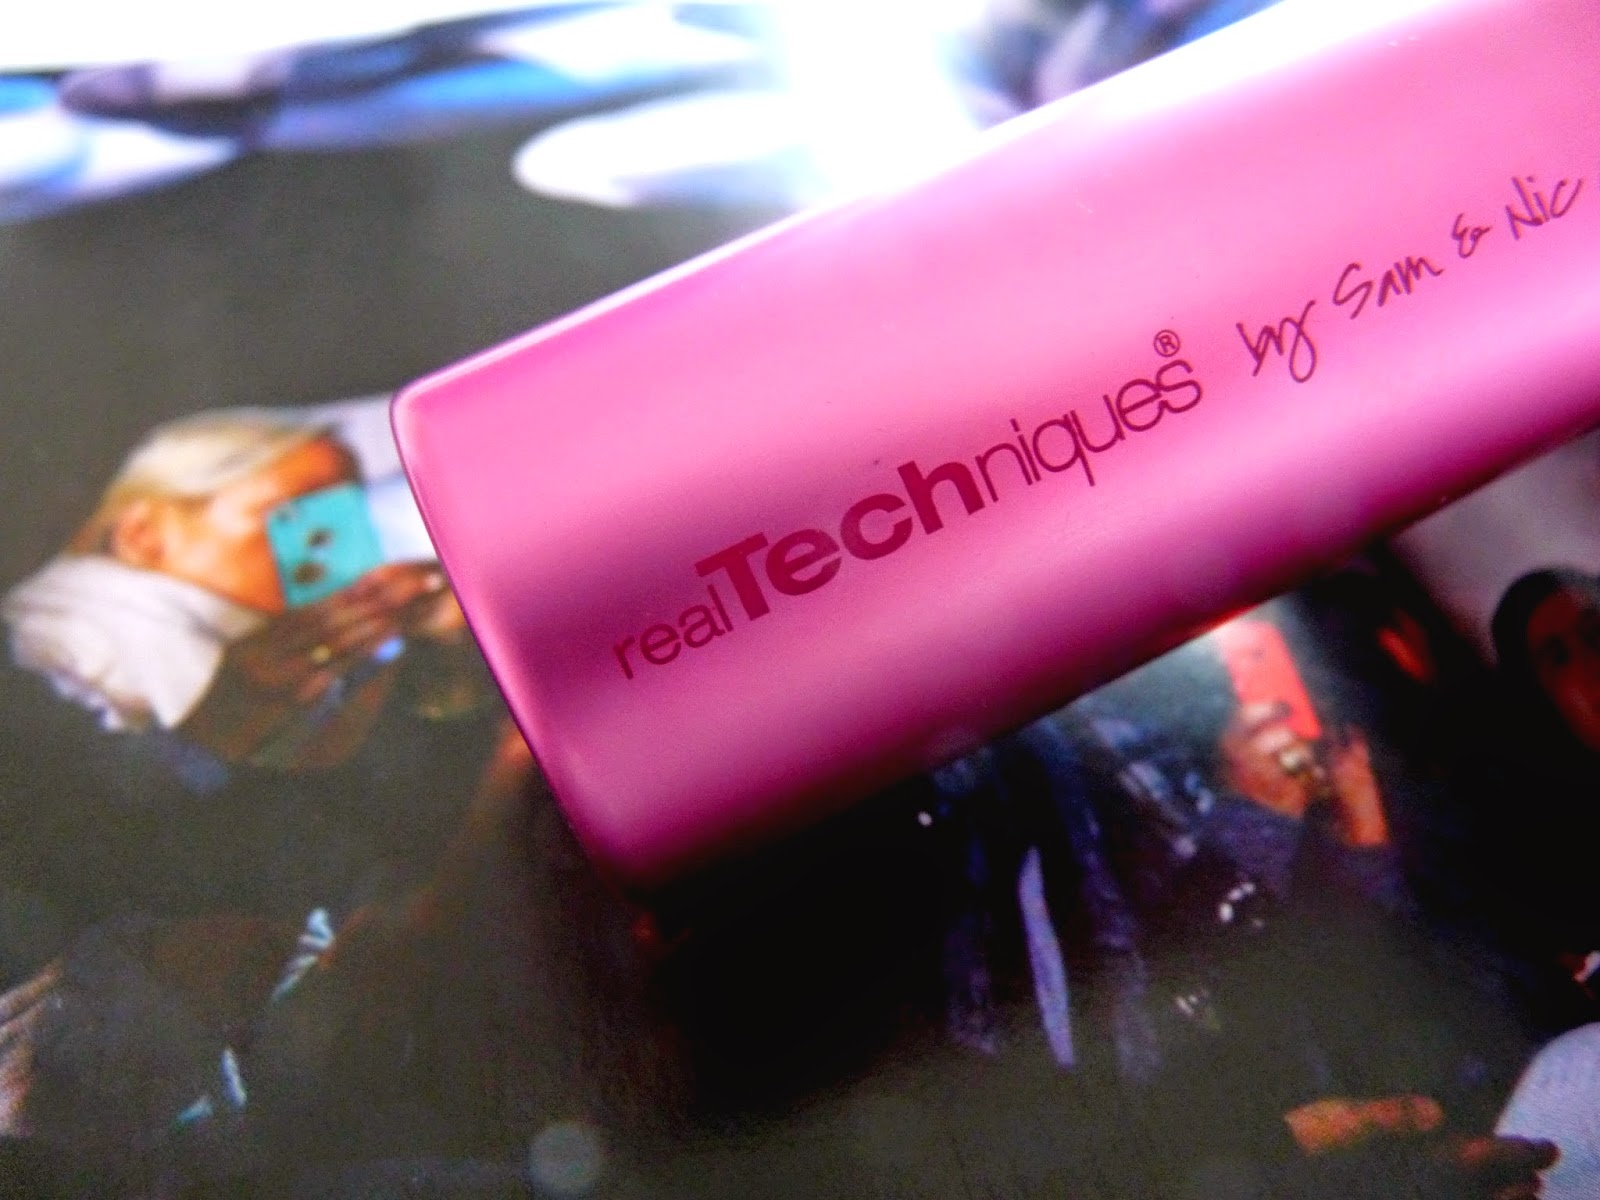 real techniques retractable kabuki brush beauty make-up review cosmetics youwishyou